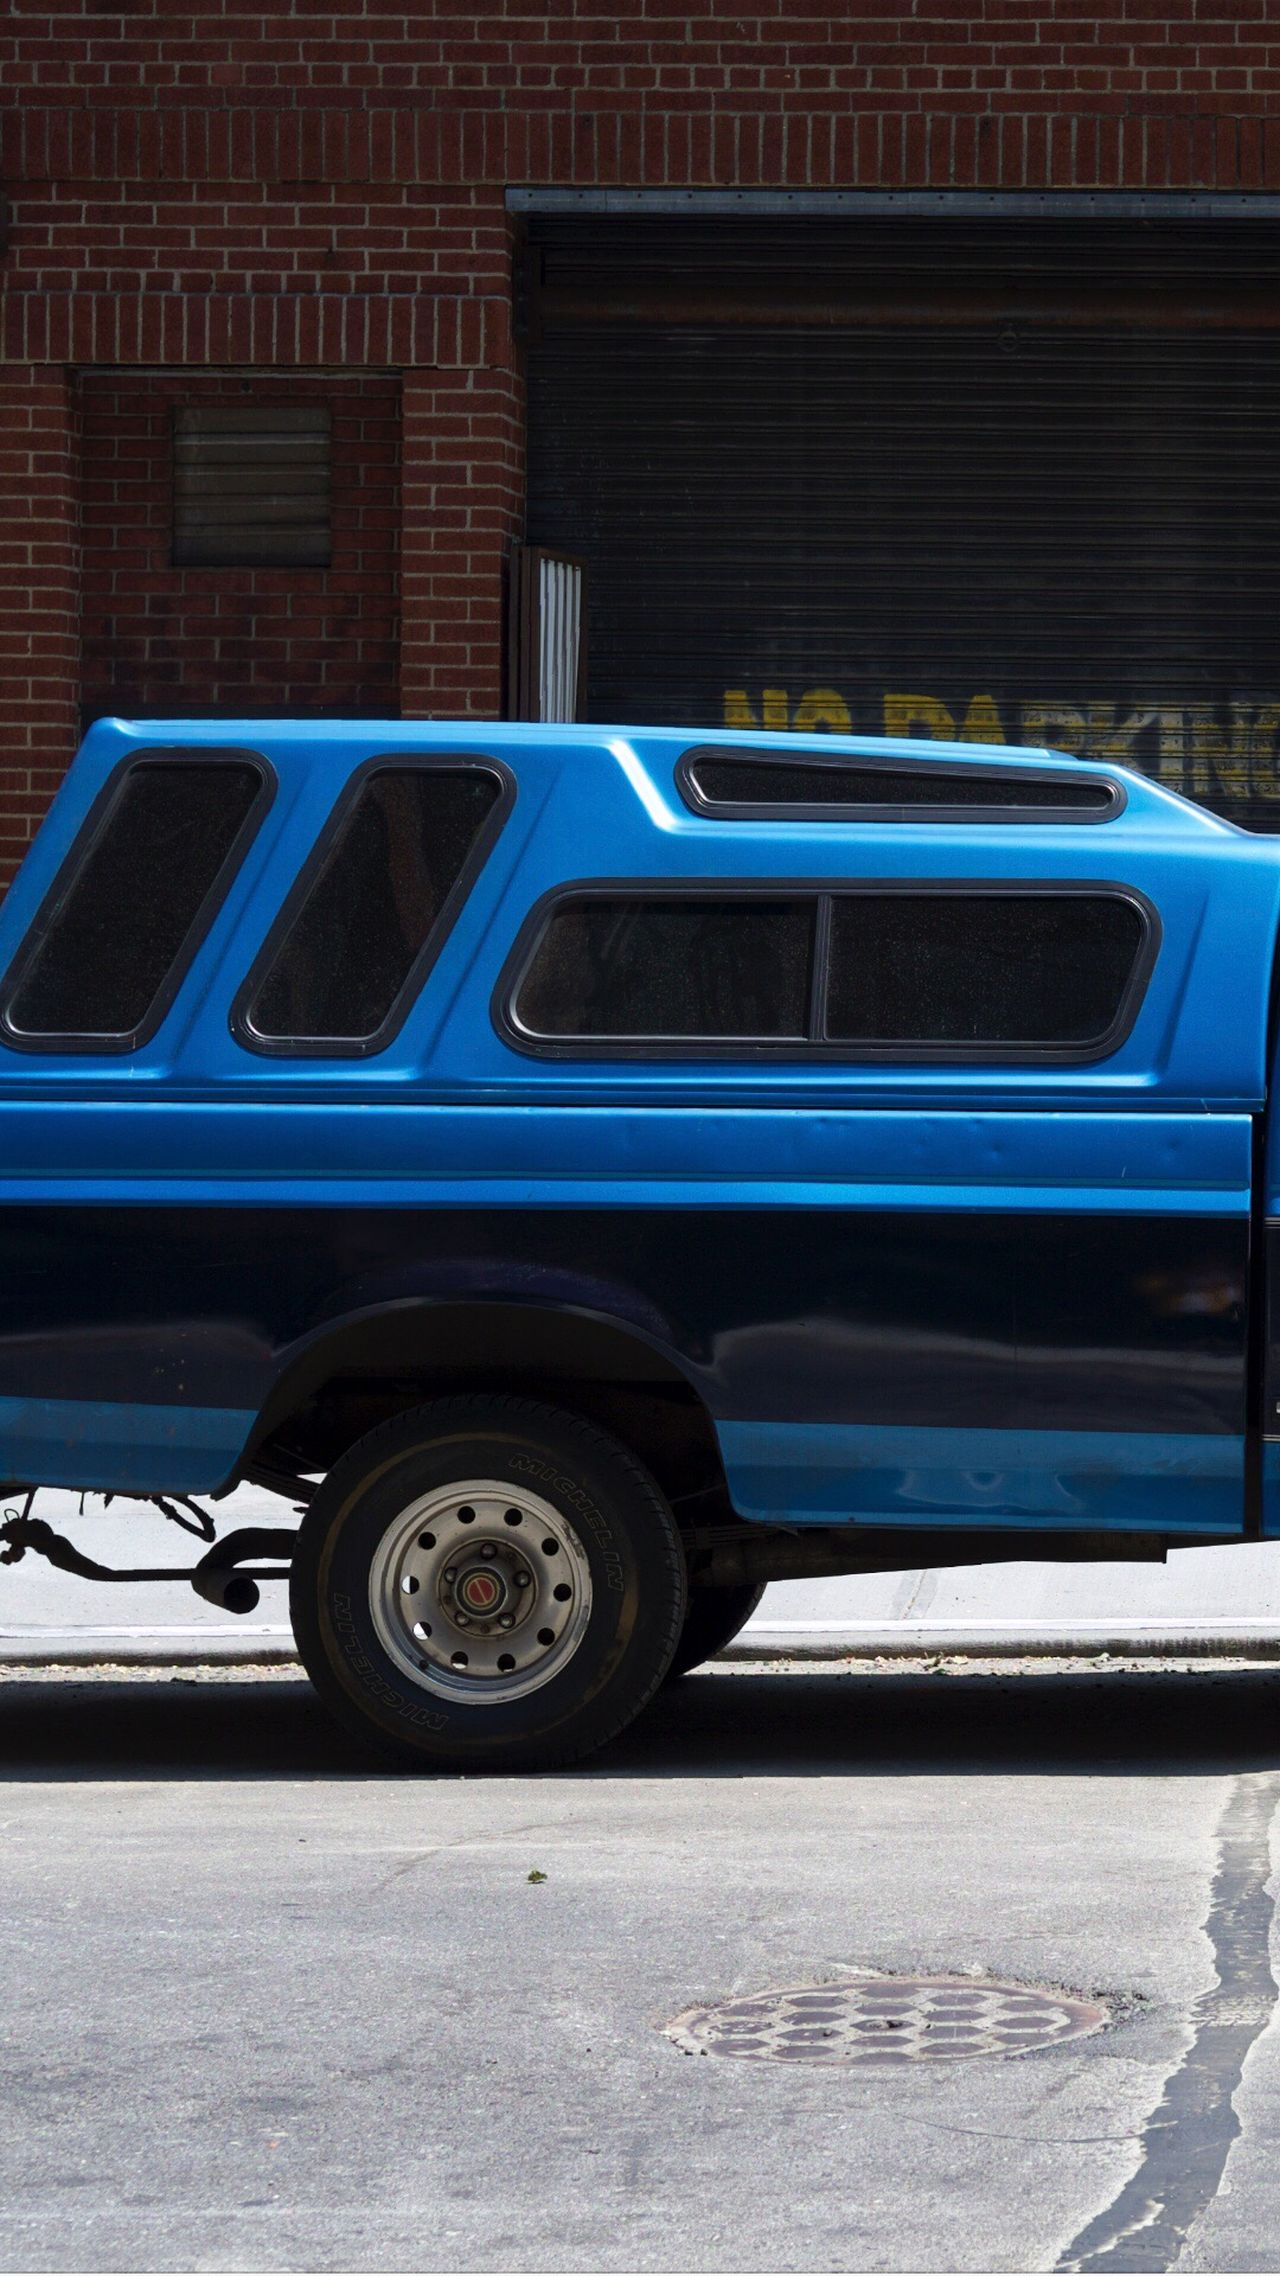 Transportation Mode Of Transport Land Vehicle Car Stationary Blue Outdoors Built Structure Building Exterior Day Architecture No People City Street Photography New York Vintage Car Minimalism Minimalistic Aesthetic Aesthetics Colors United States Streetphotography City Street